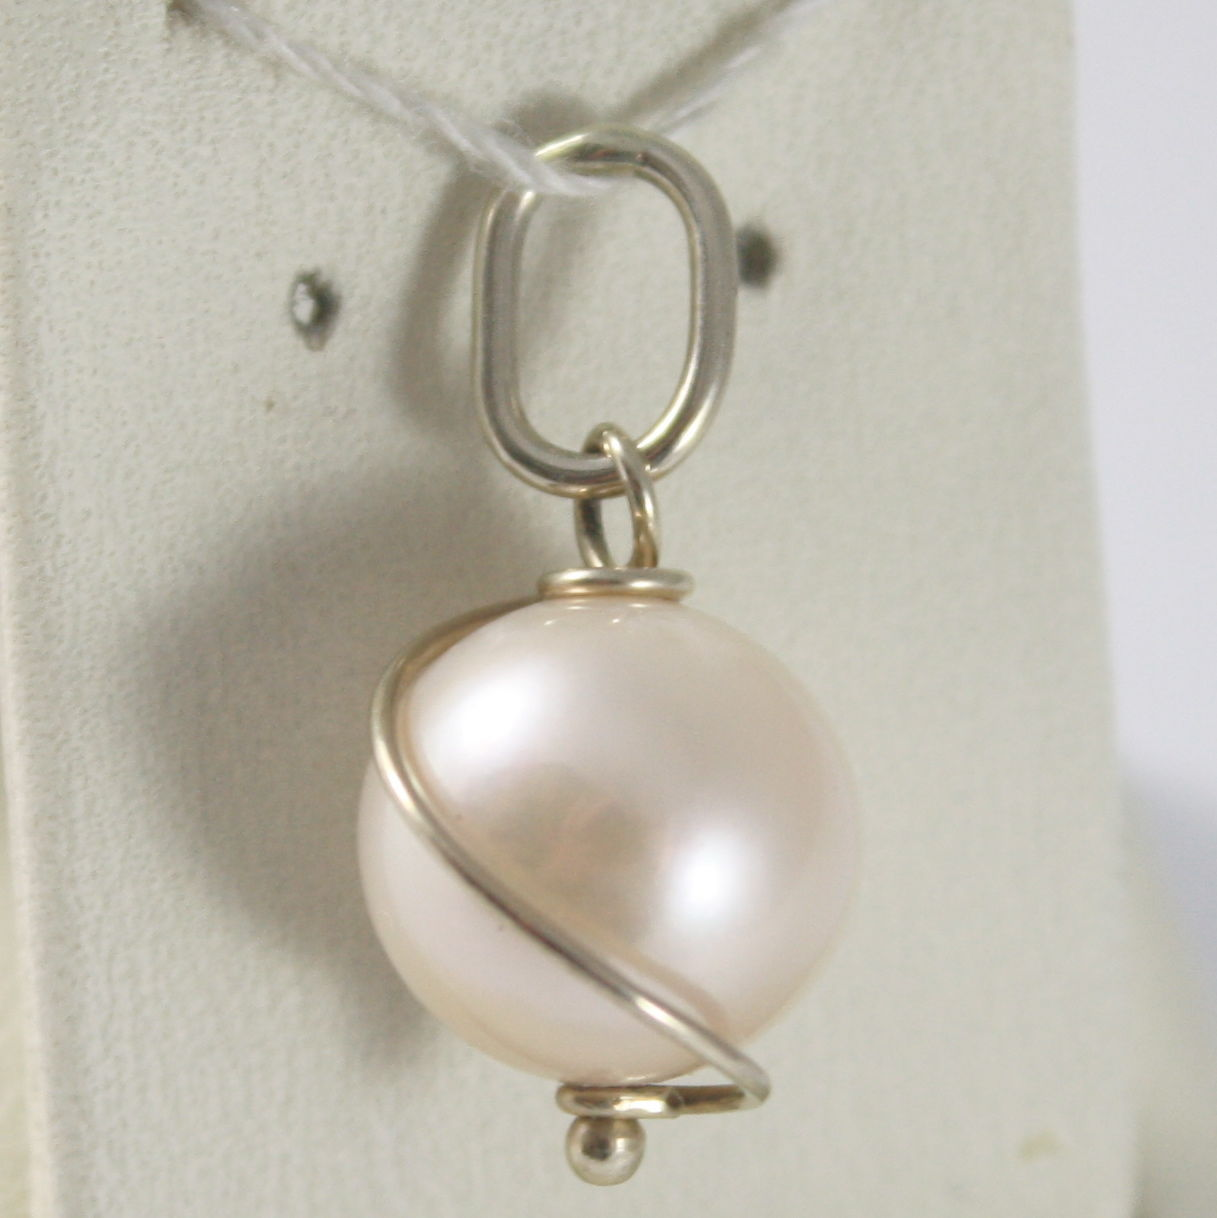 SOLID 18K WHITE ROUGH GOLD SPIRAL PENDANT WITH ROUND PINK PEARL, MADE IN ITALY